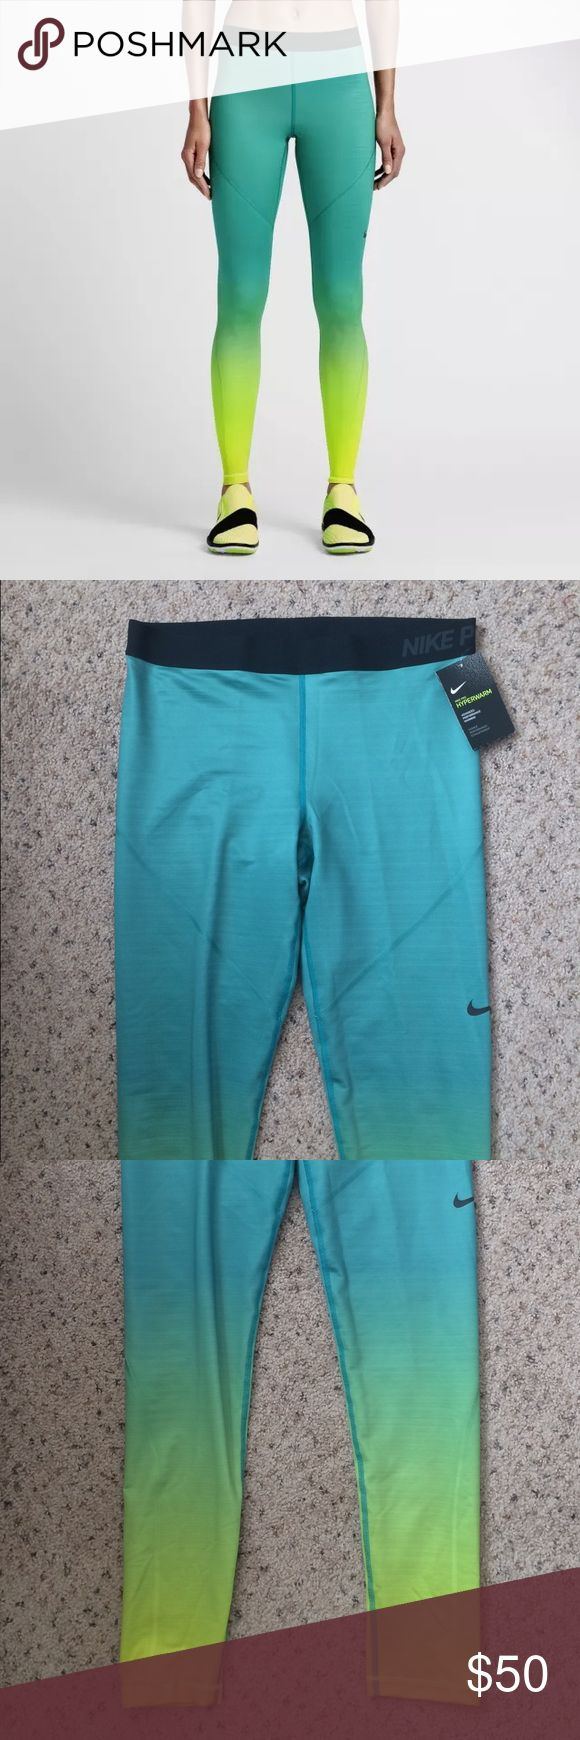 Nike Hyperwarm Teal Green Yellow Tights XL NIKE PRO HYPERWARM WOMEN'S TRAINING TIGHTS 803096  WOMENS SIZE : XL BRAND NEW WITH TAGS The Nike Pro HyperWarm Women's Training Tights help keep you warm, dry and comfortable during cool-weather workouts so you can stay active all year long.